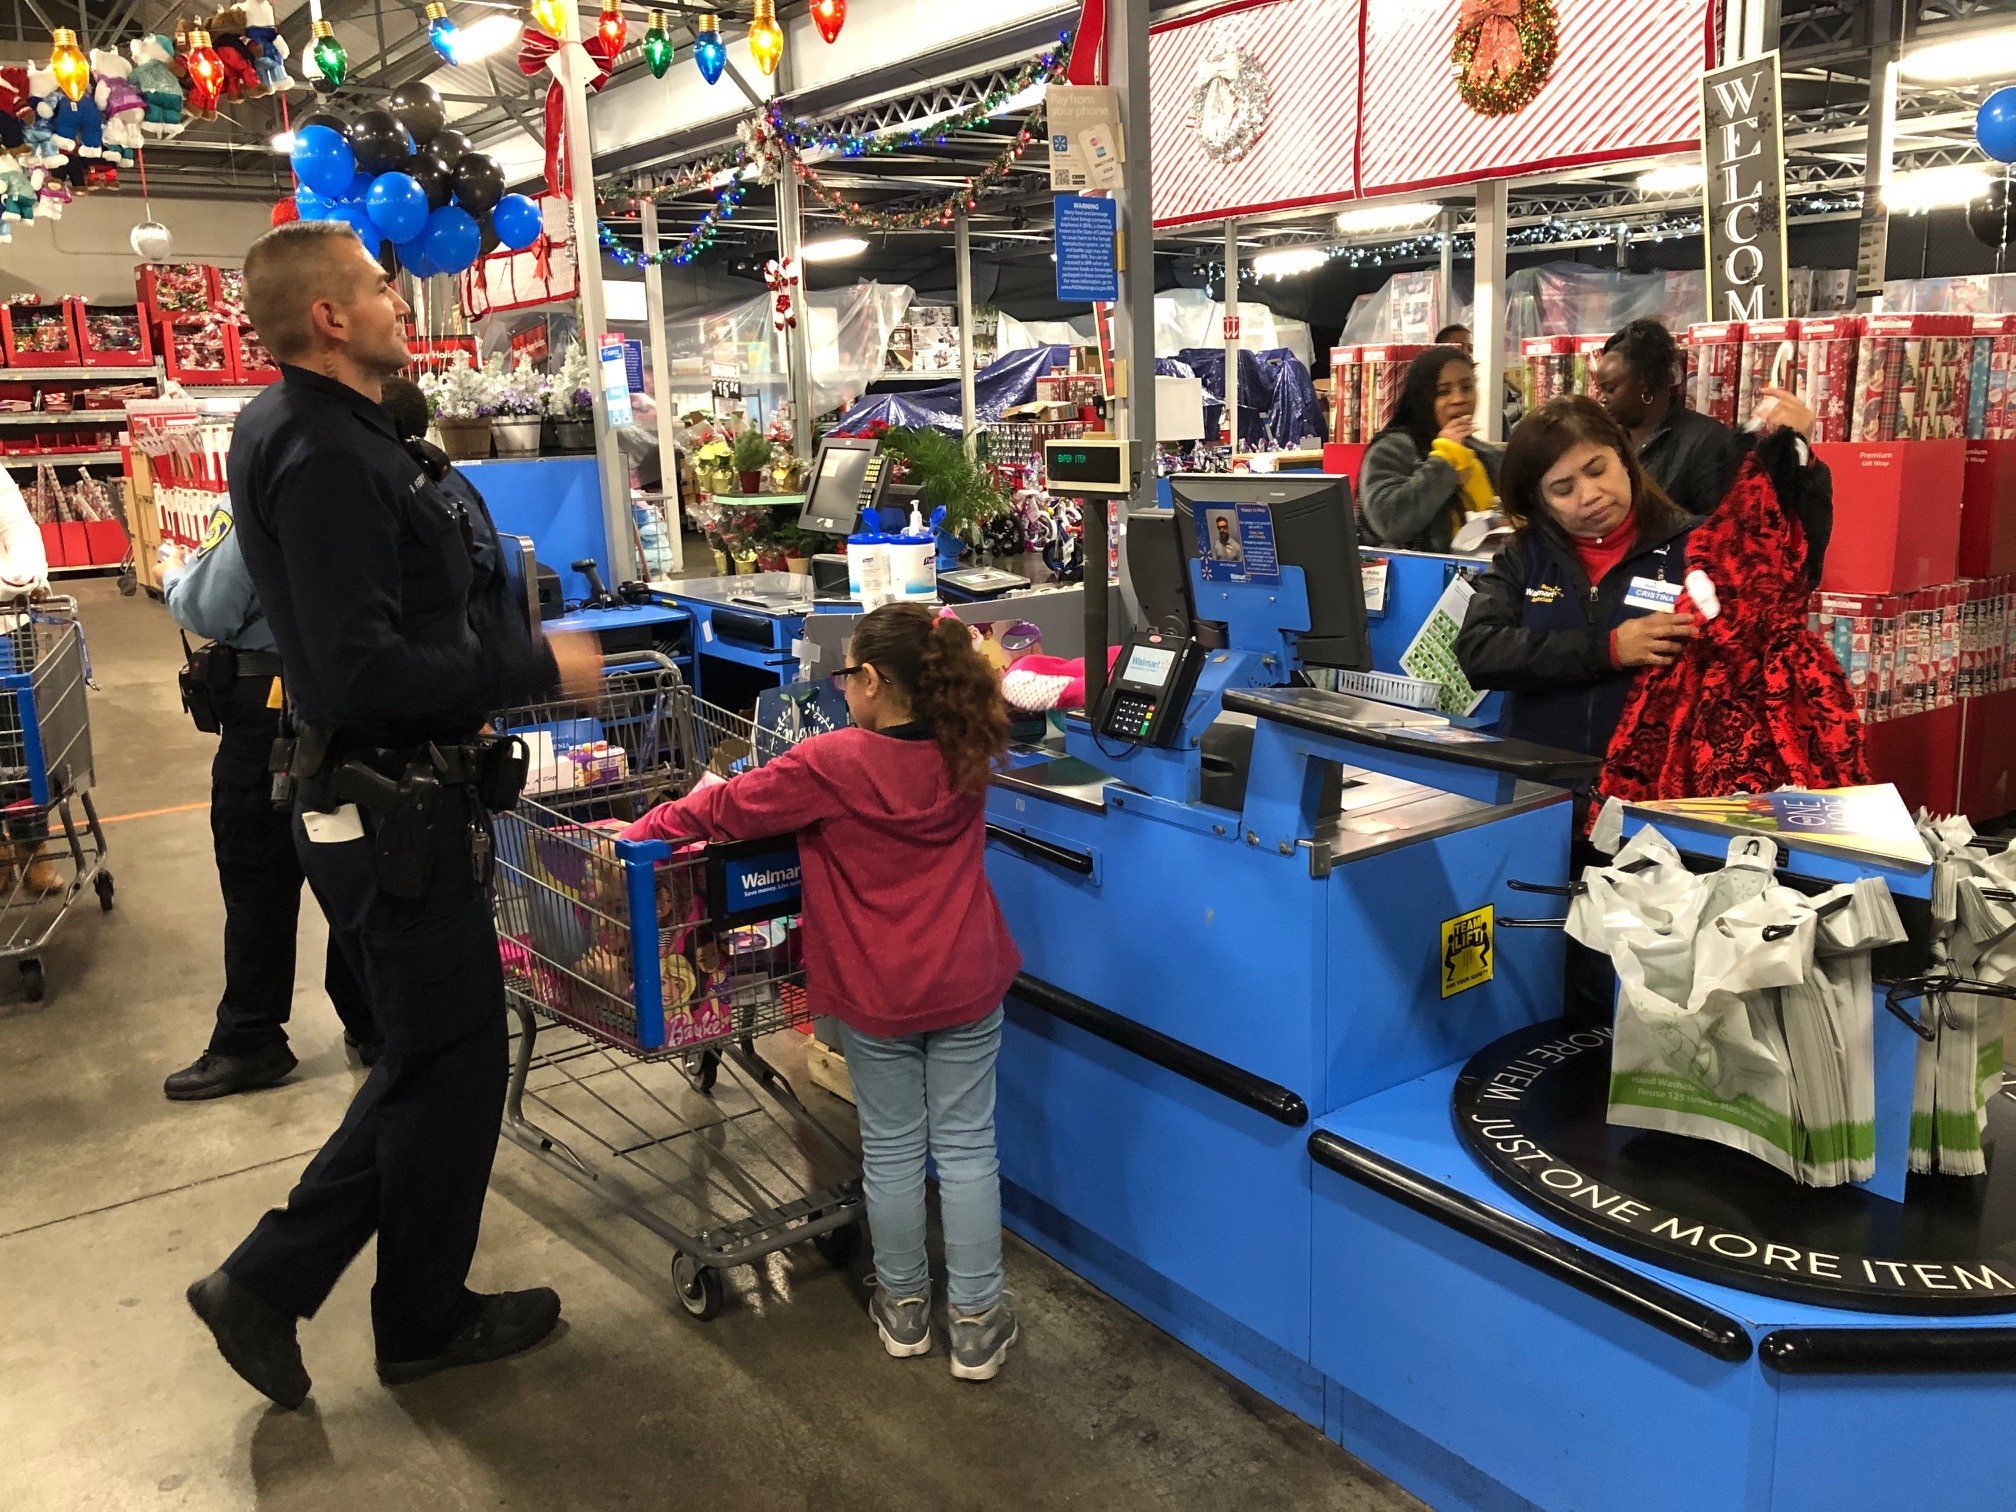 Child and cop unloading their shopping cart for cashier